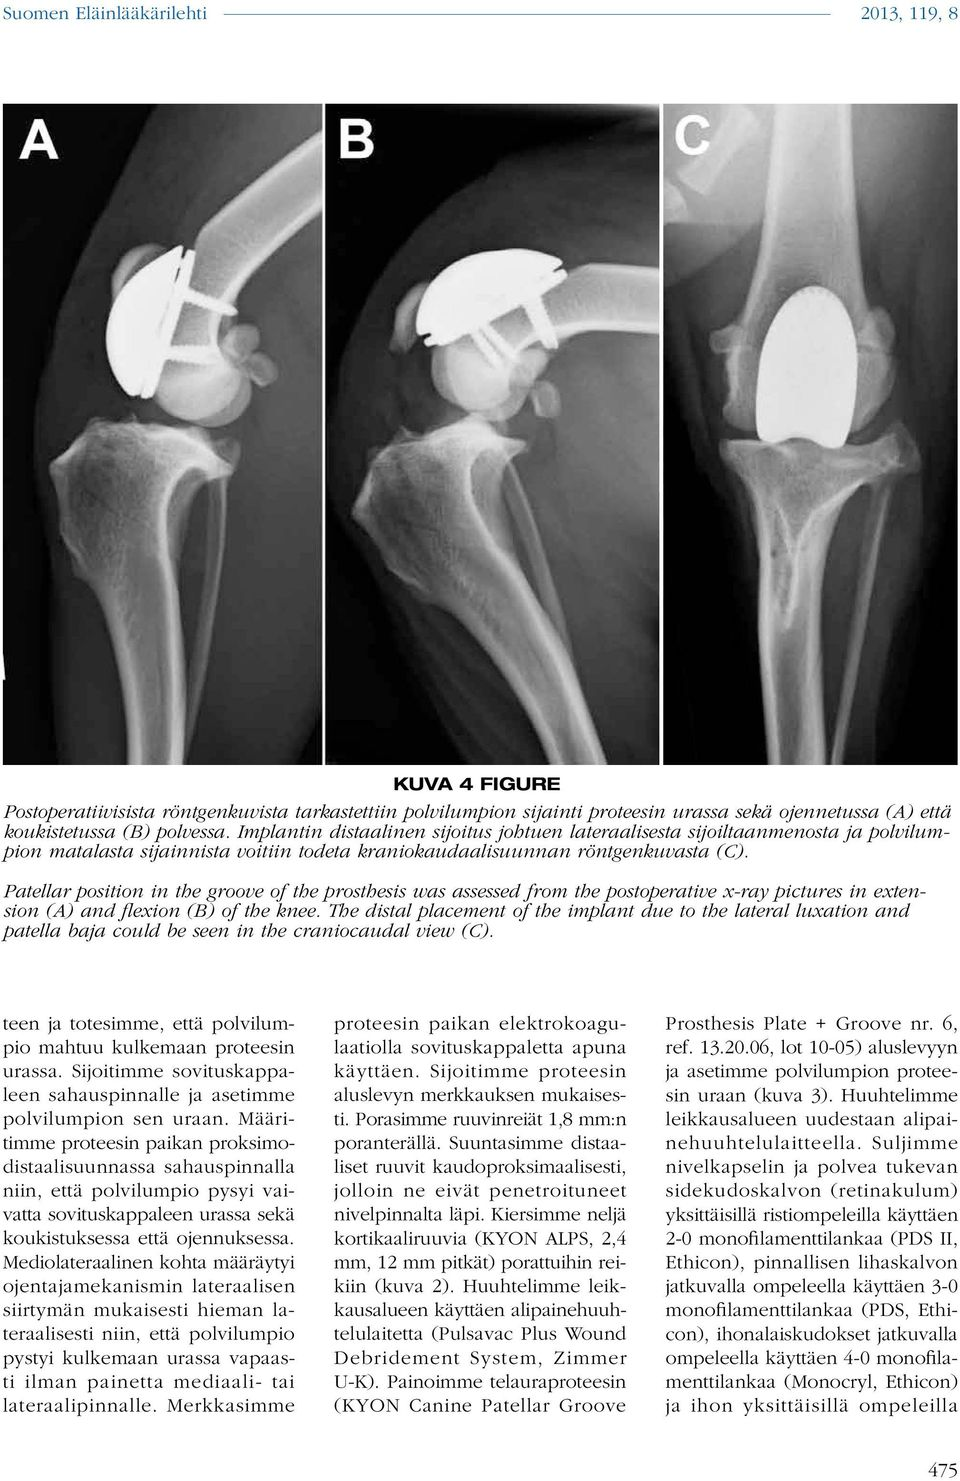 Patellar position in the groove of the prosthesis was assessed from the postoperative x-ray pictures in extension (A) and flexion (B) of the knee.